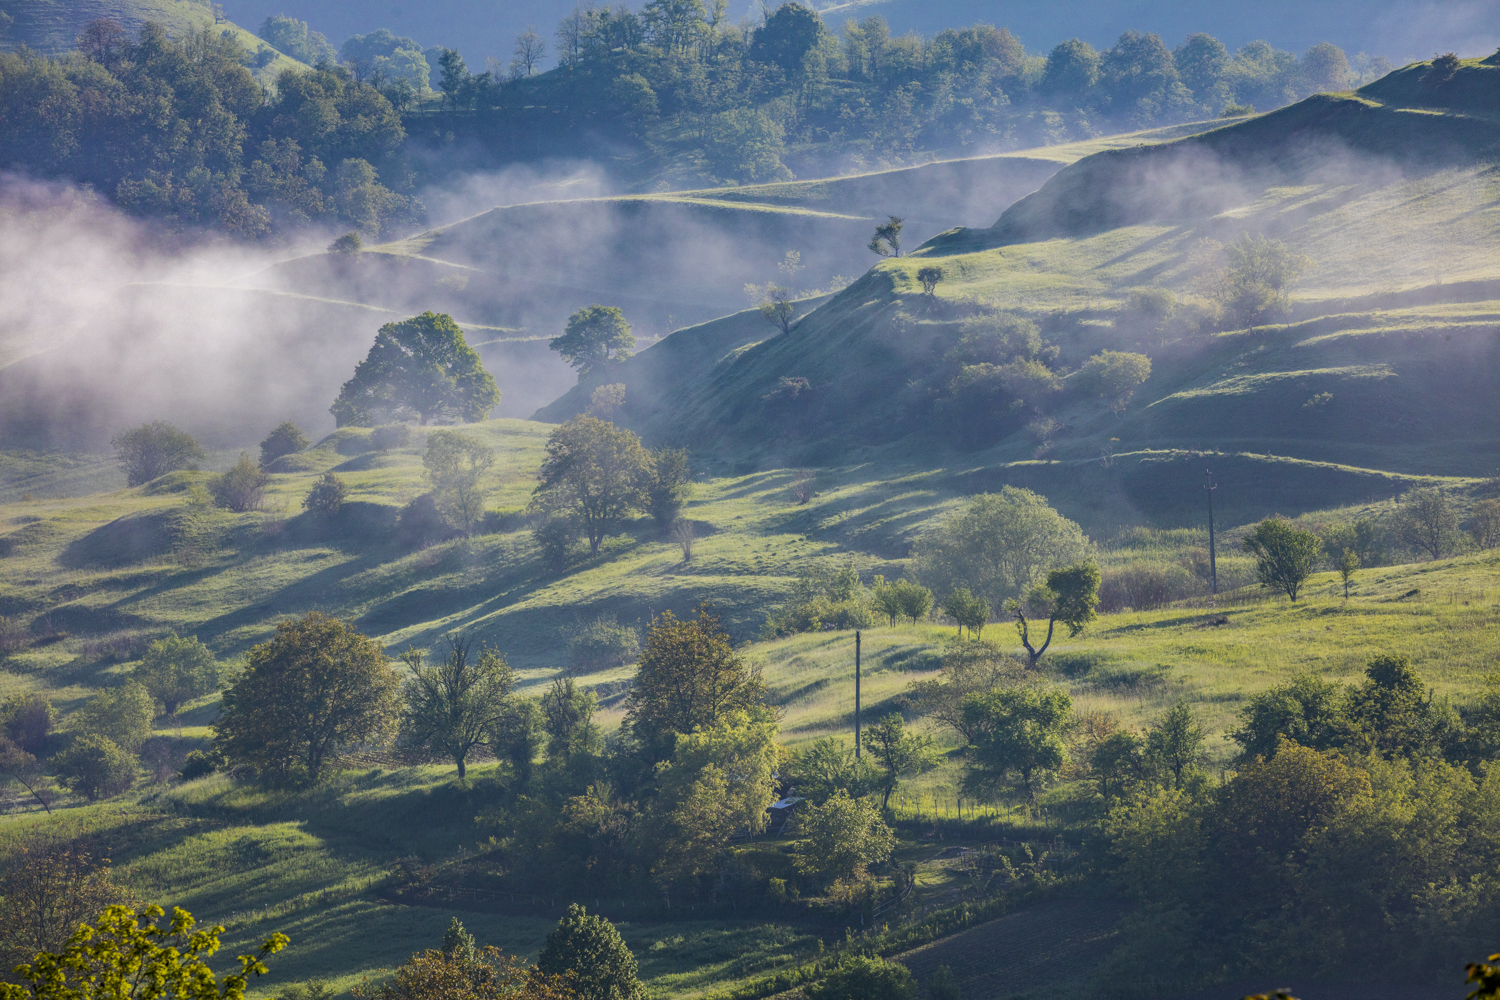 misty rolling hills and trees